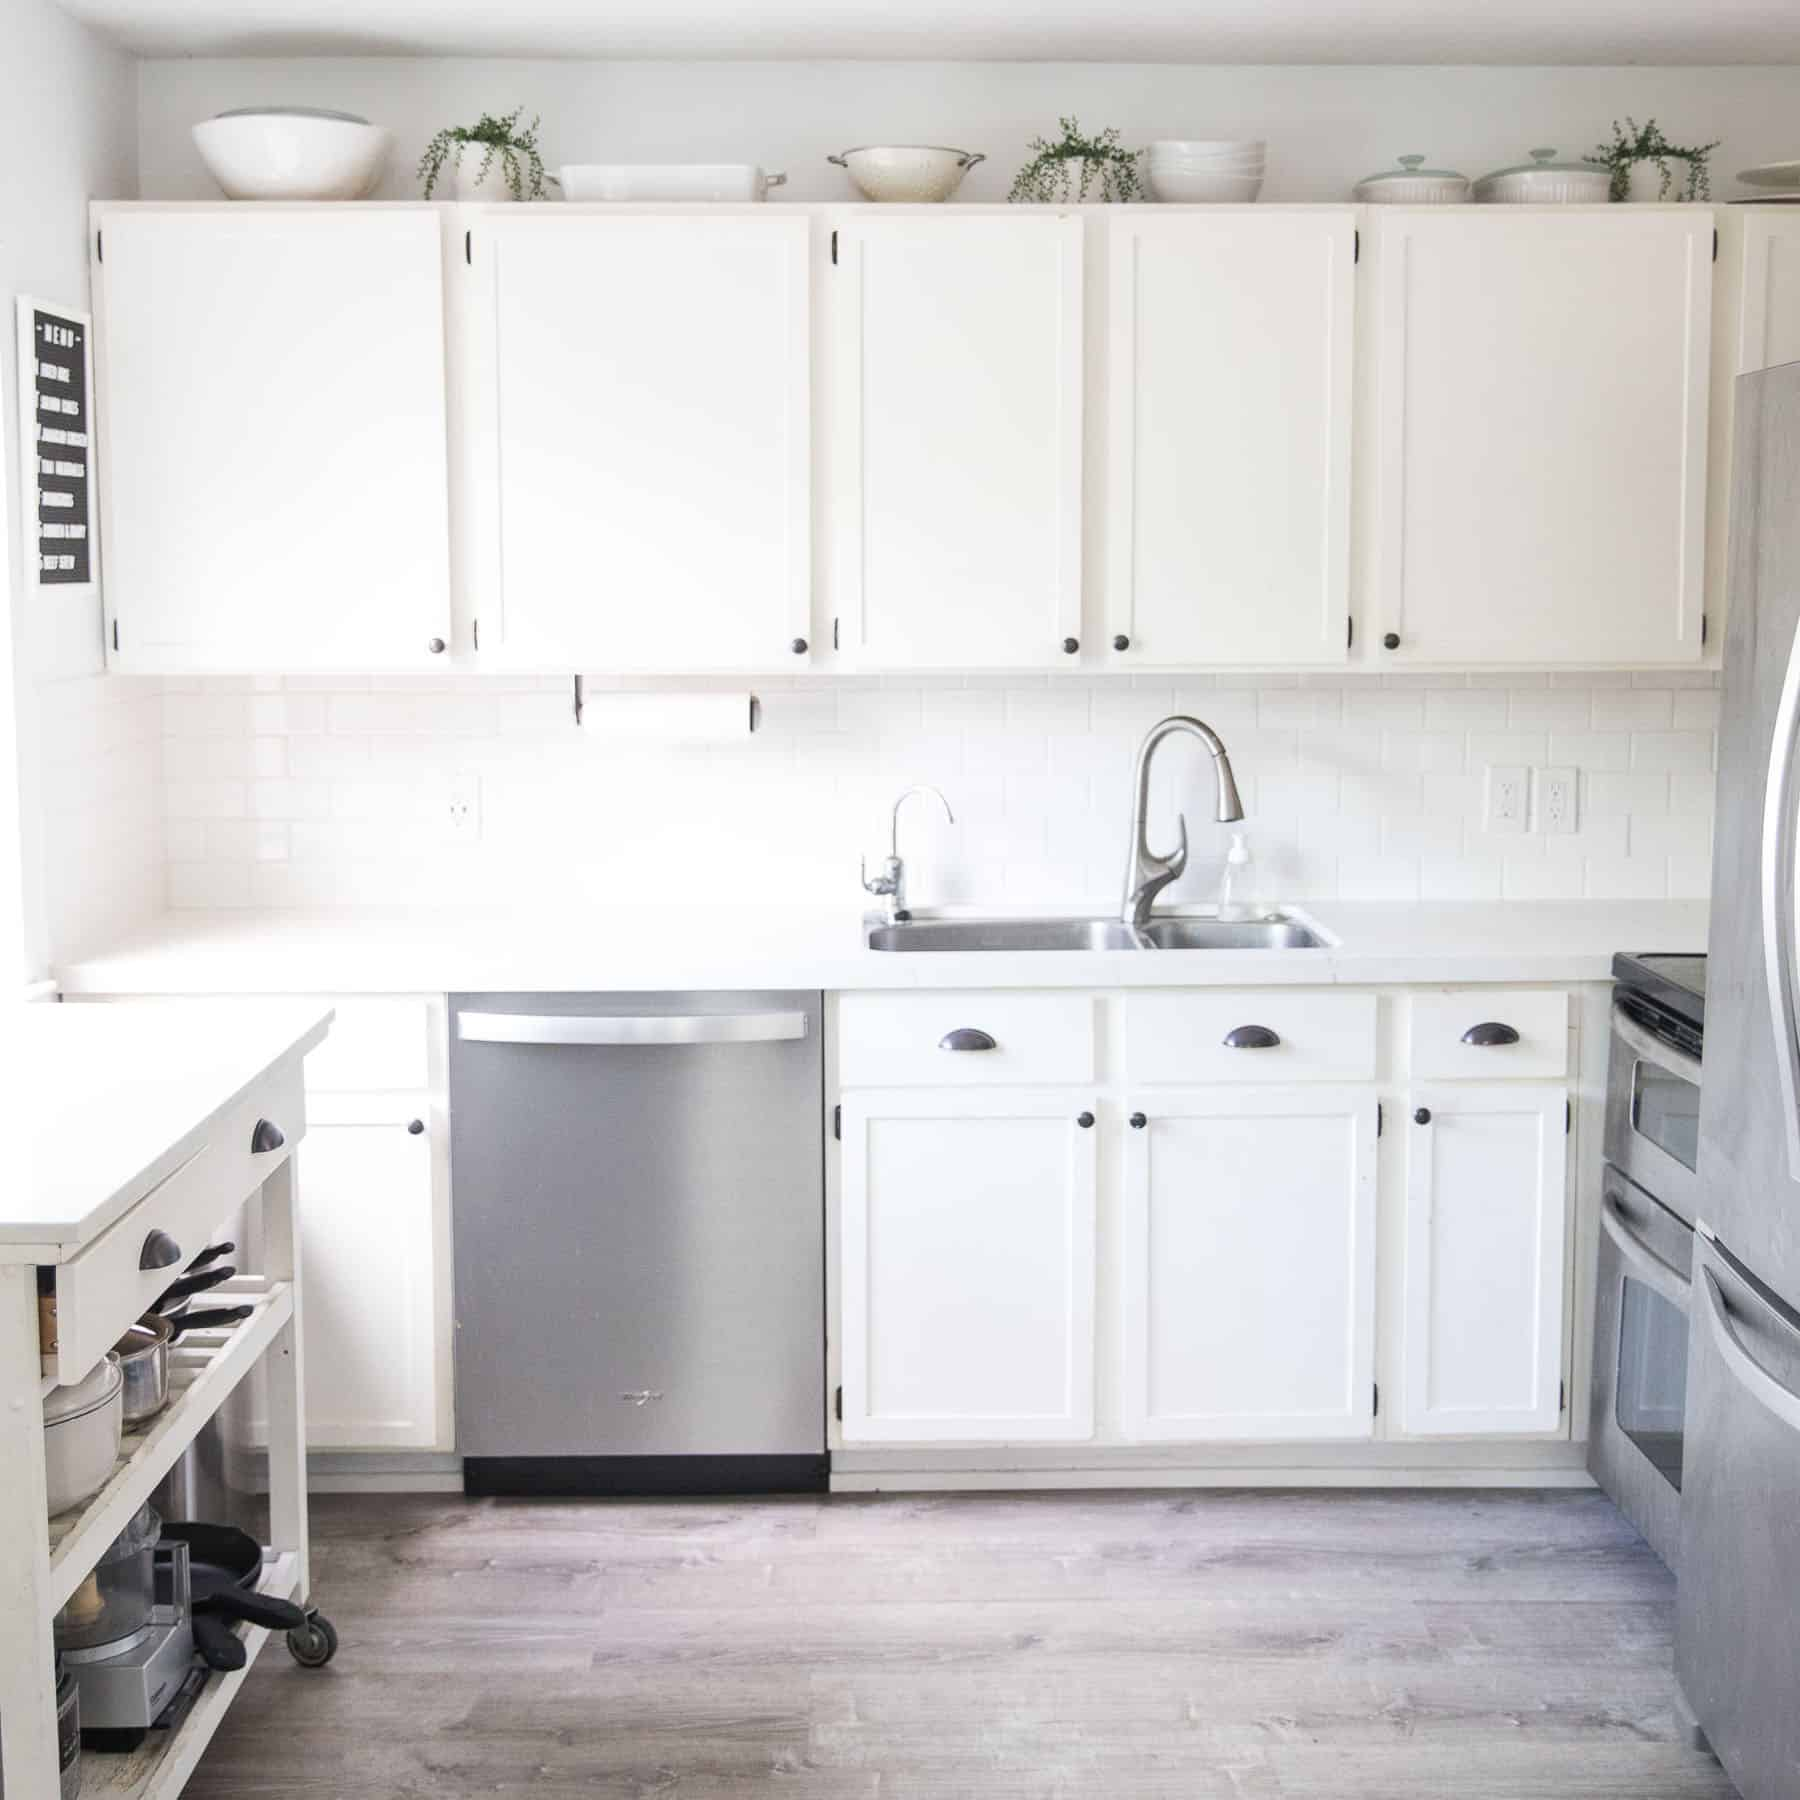 House Tour Of Our 700 Sq Ft Tiny Home Tastes Lovely